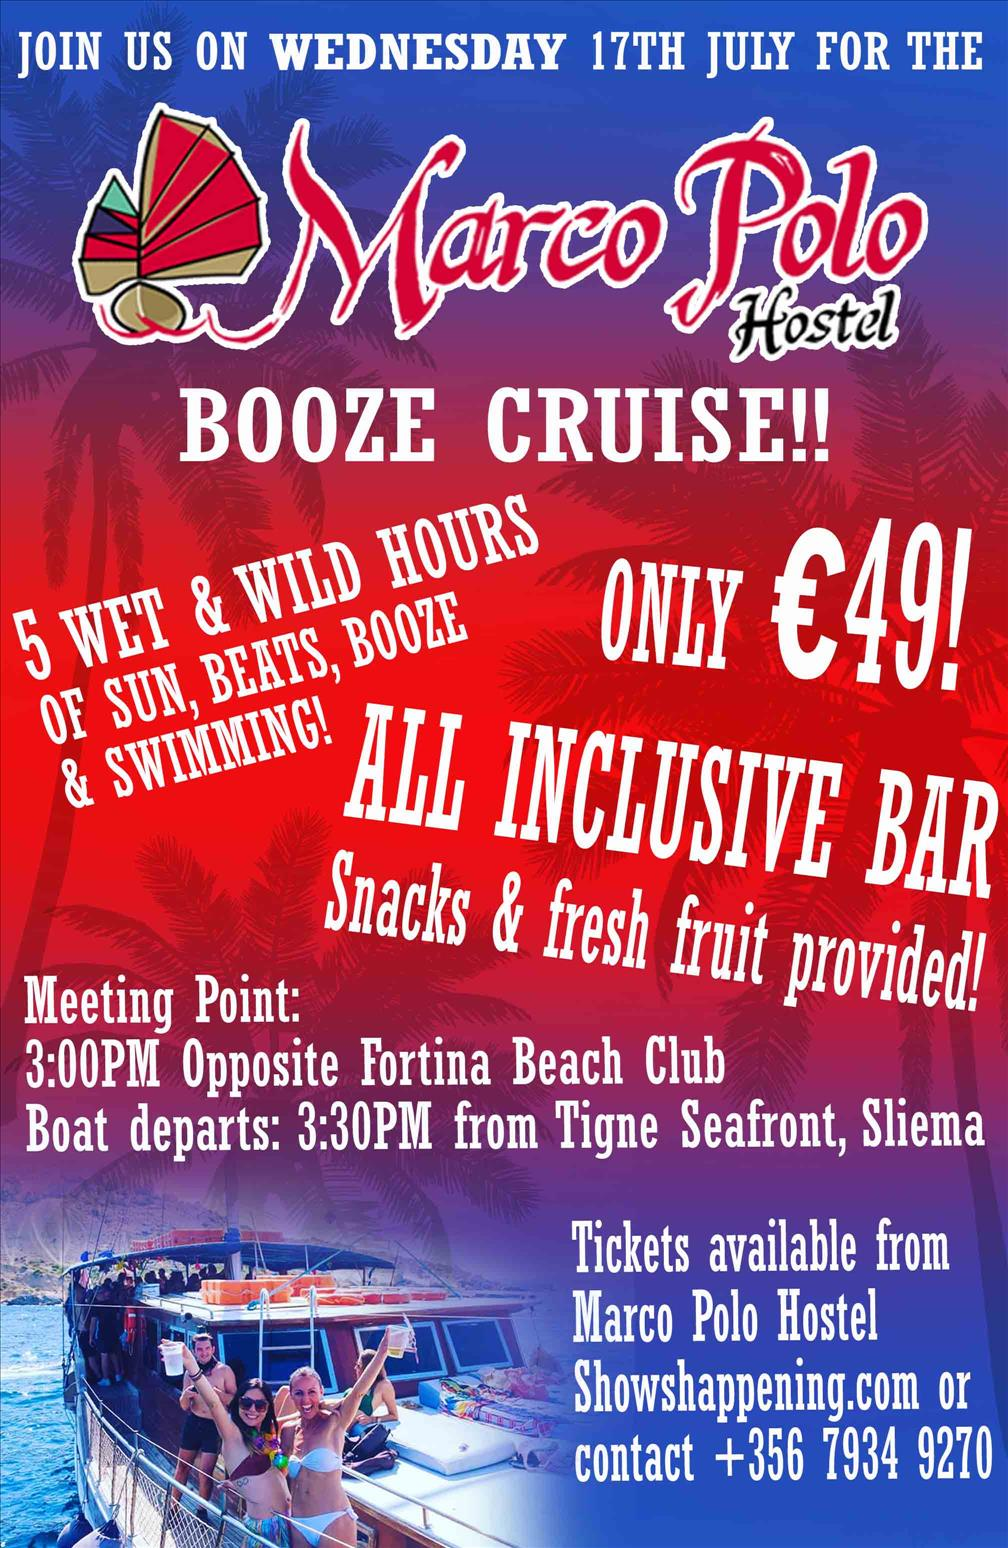 Marco Polo Hostel Booze Cruise flyer